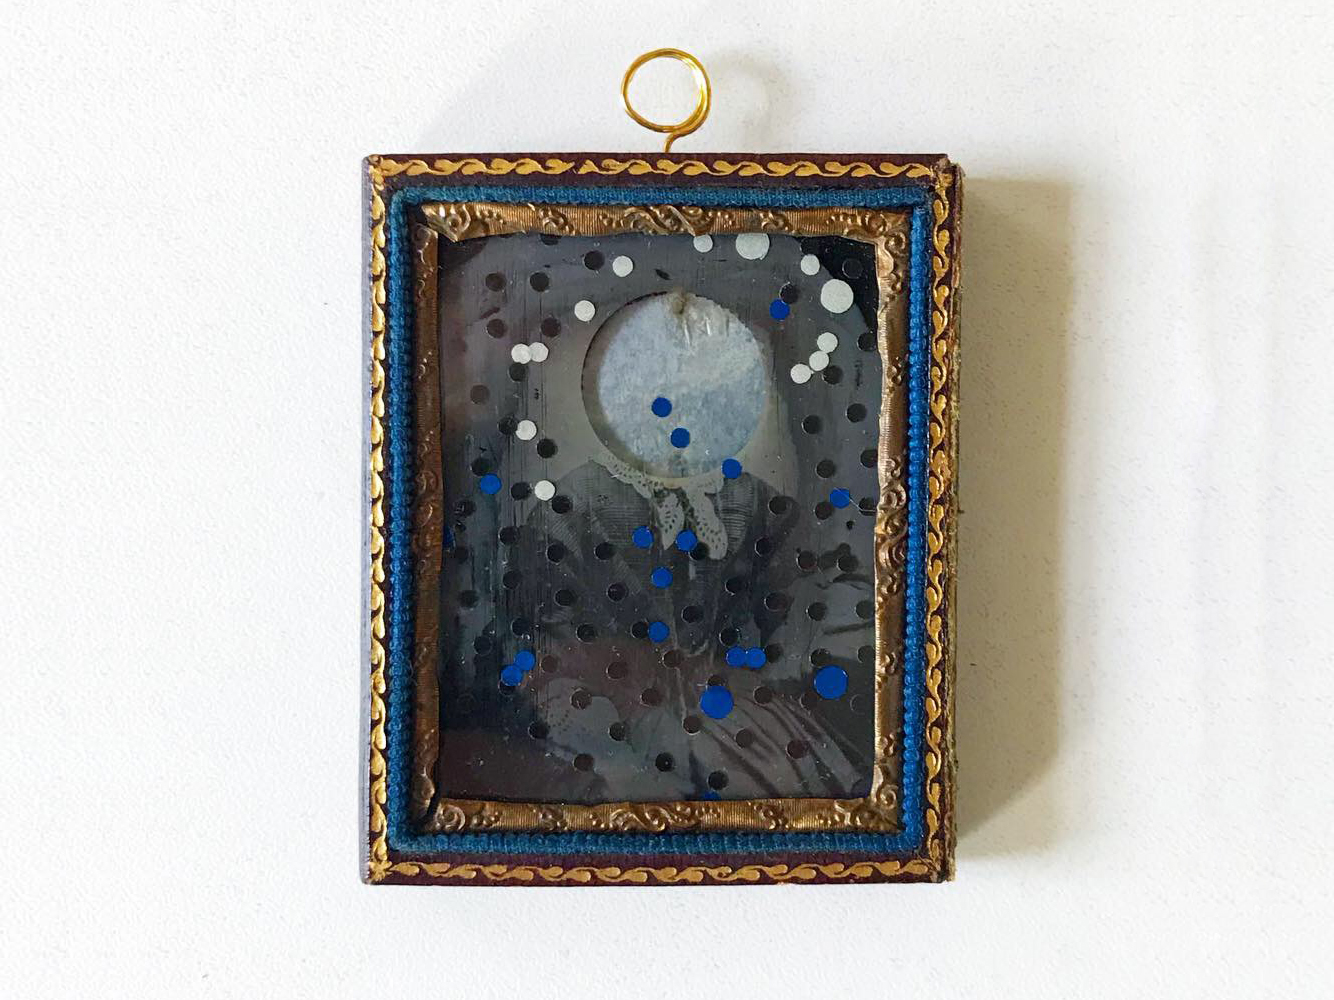 Sanctae Mariae coronam scriptor de caelum   (Holy Mary's heavenly crown) , 2018  Redrafted ambrotype with reflective film and Lunaria pod casing,   7.5 x 6.2 cm